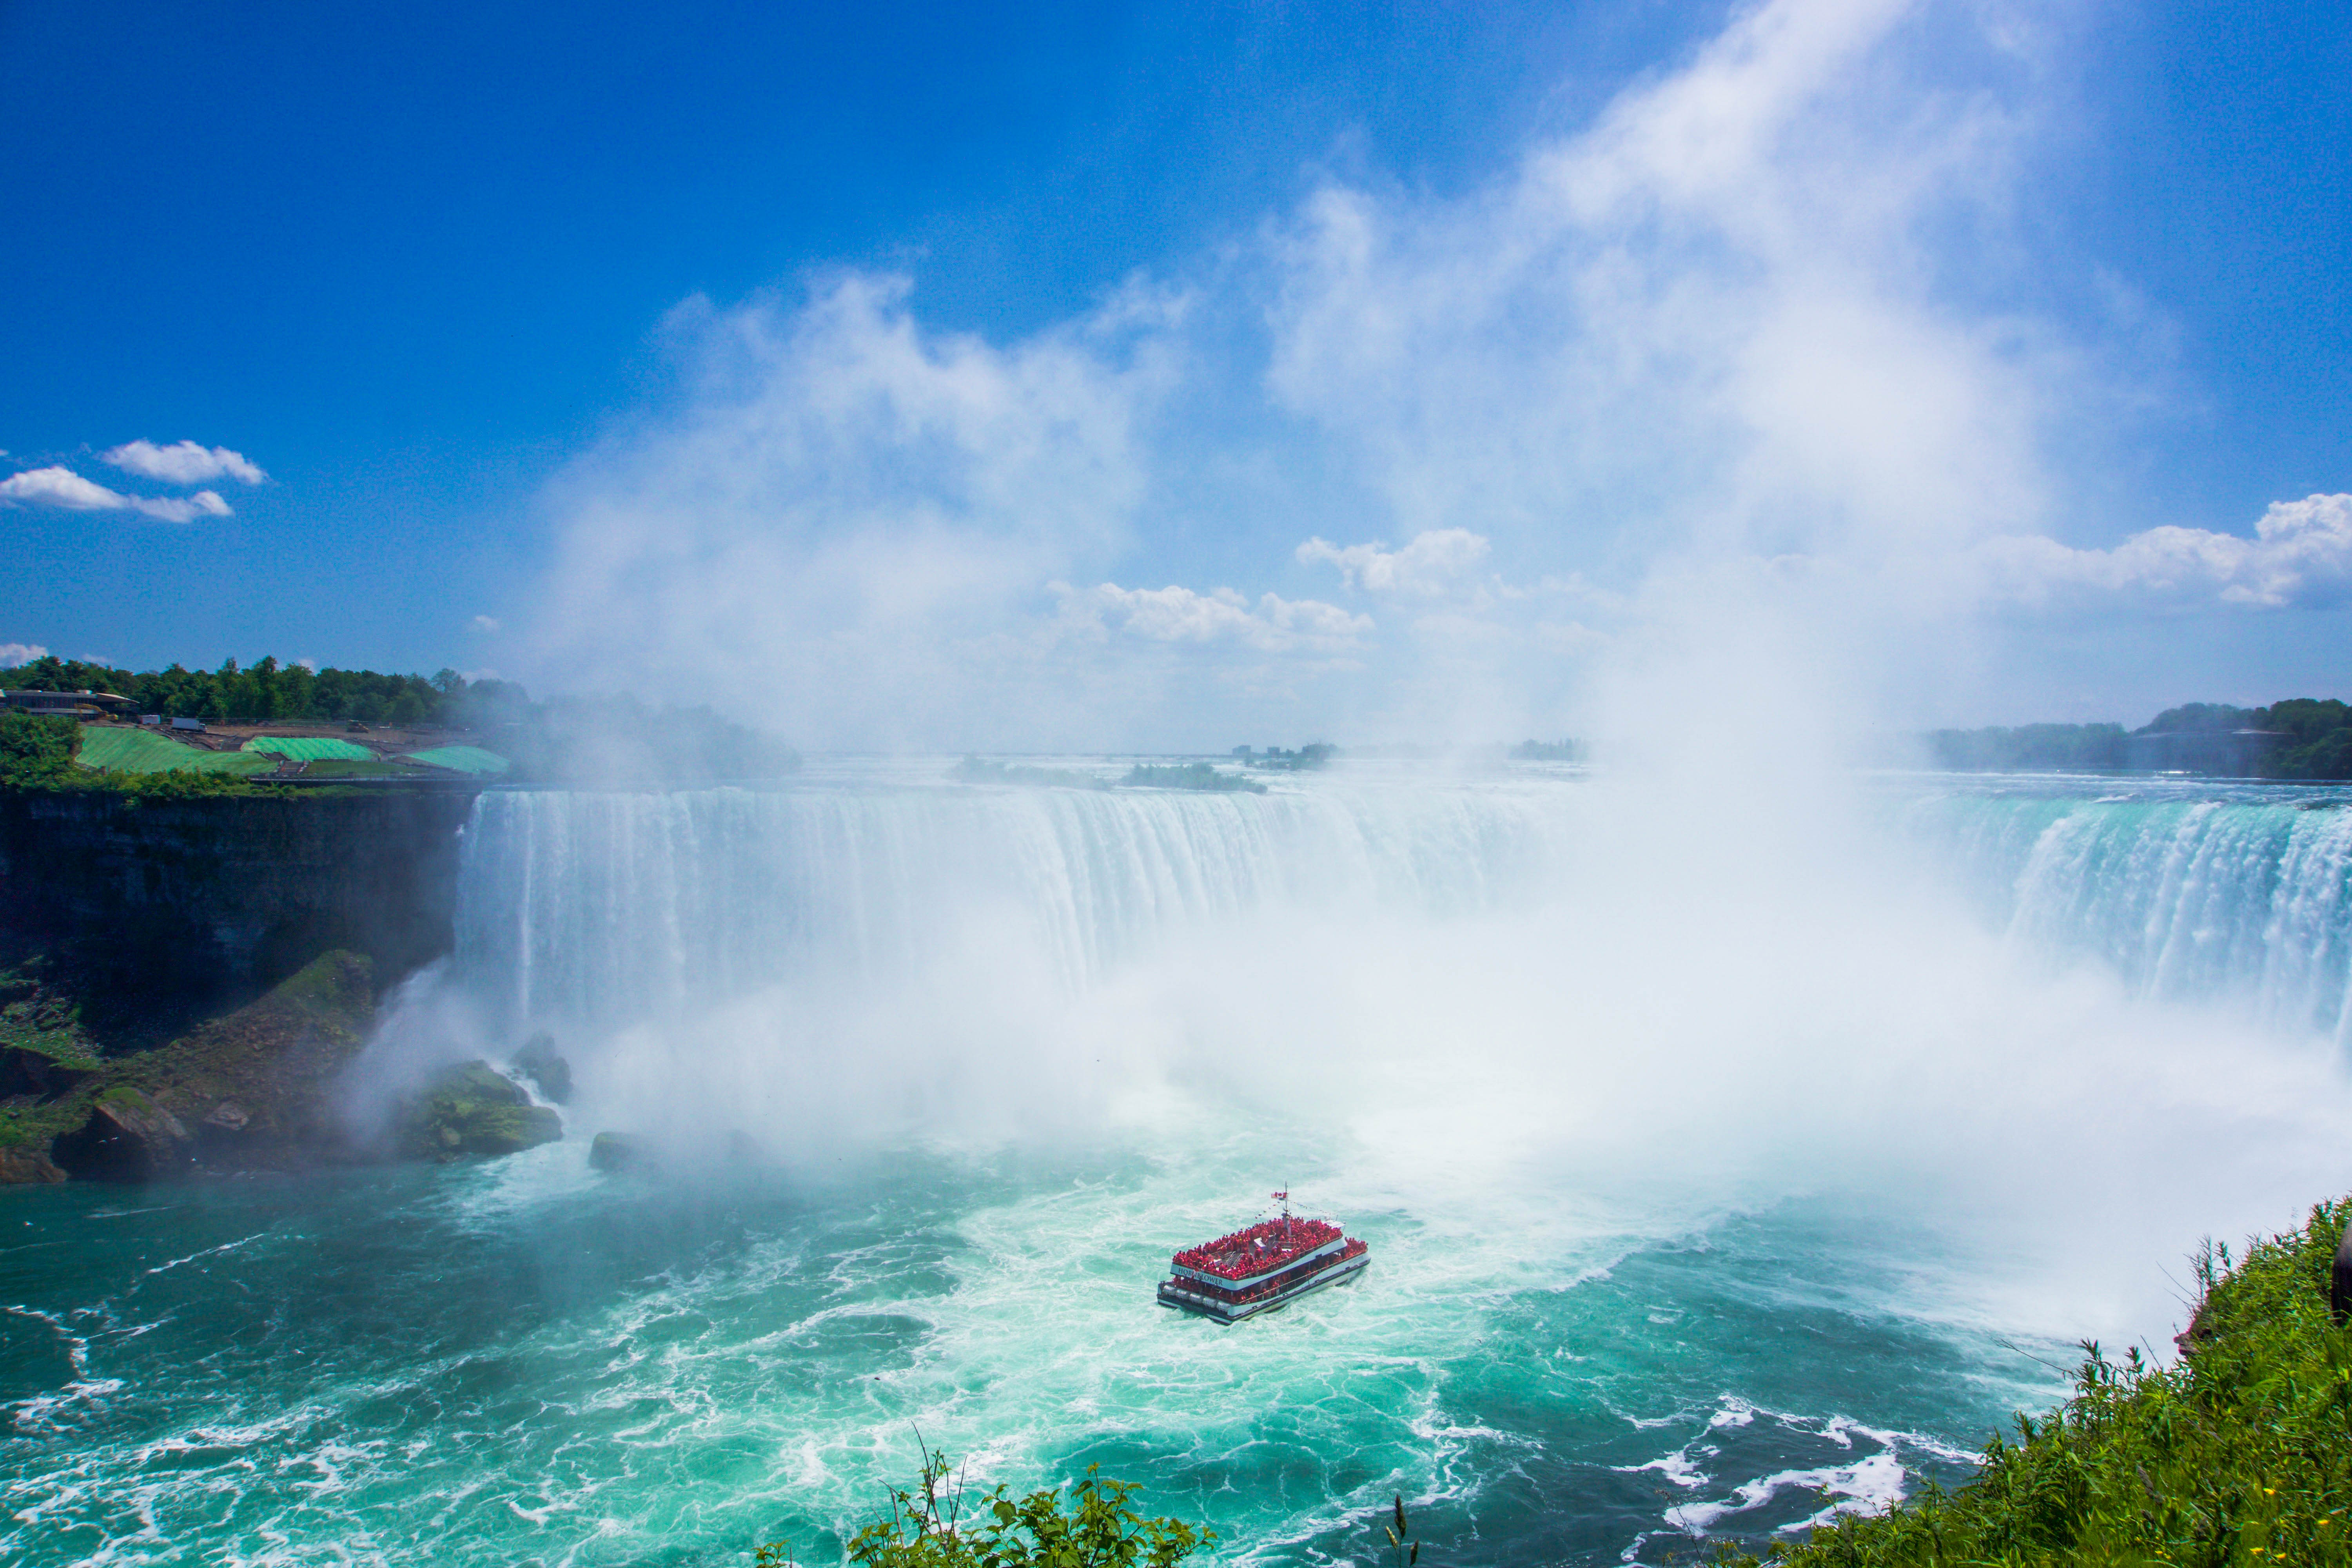 Cruise into the falls form the Canadian side